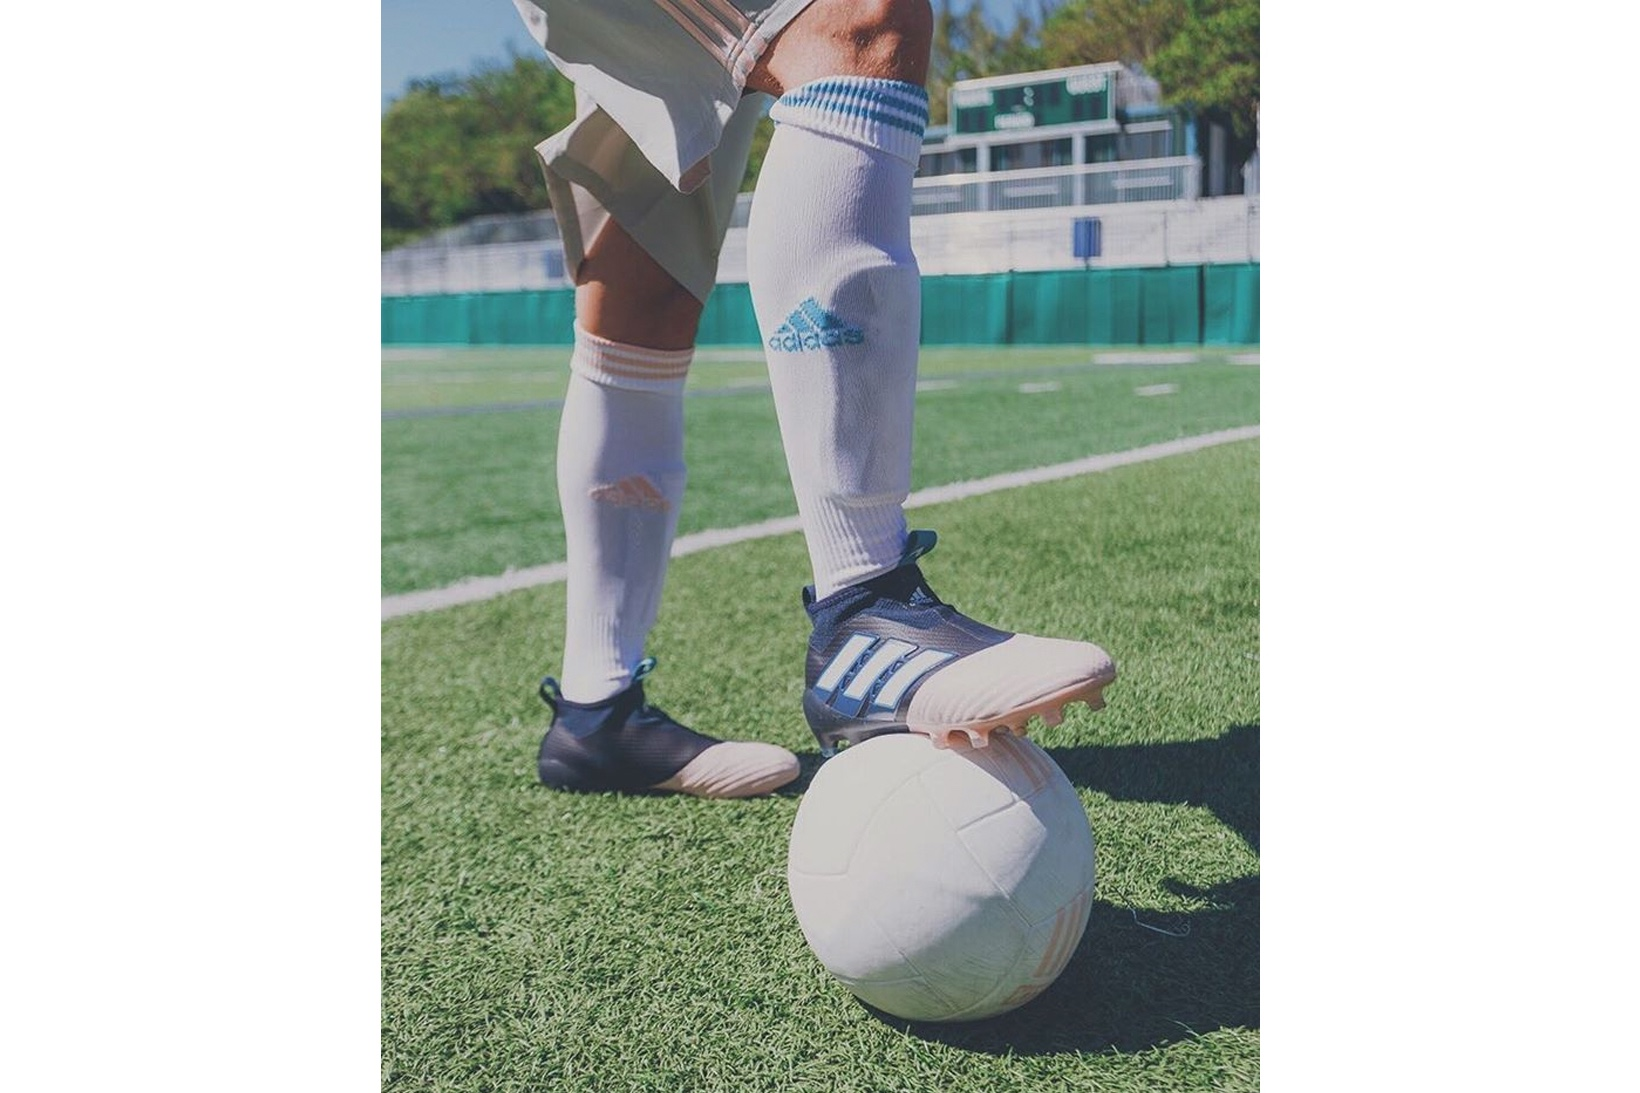 kith-adidas-football-footwear-collection-first-look-2